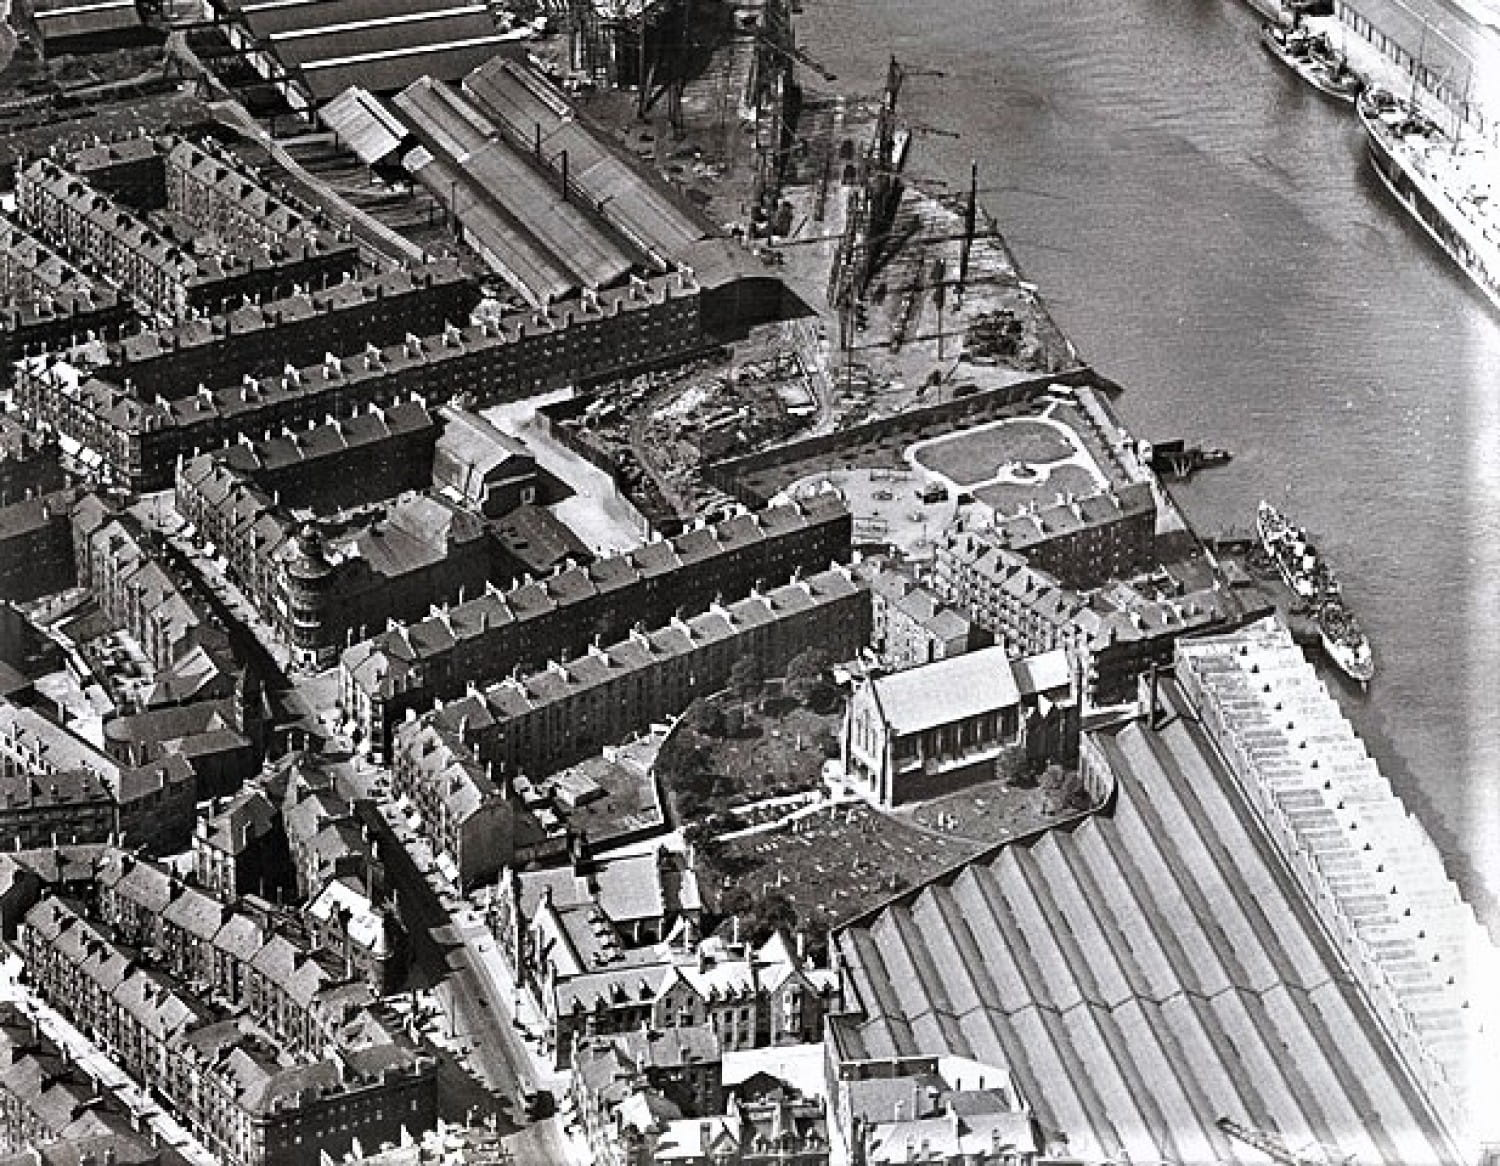 Govan Old, hemmed in by the river, tenements, and the shipyard (Glasgow City Council)